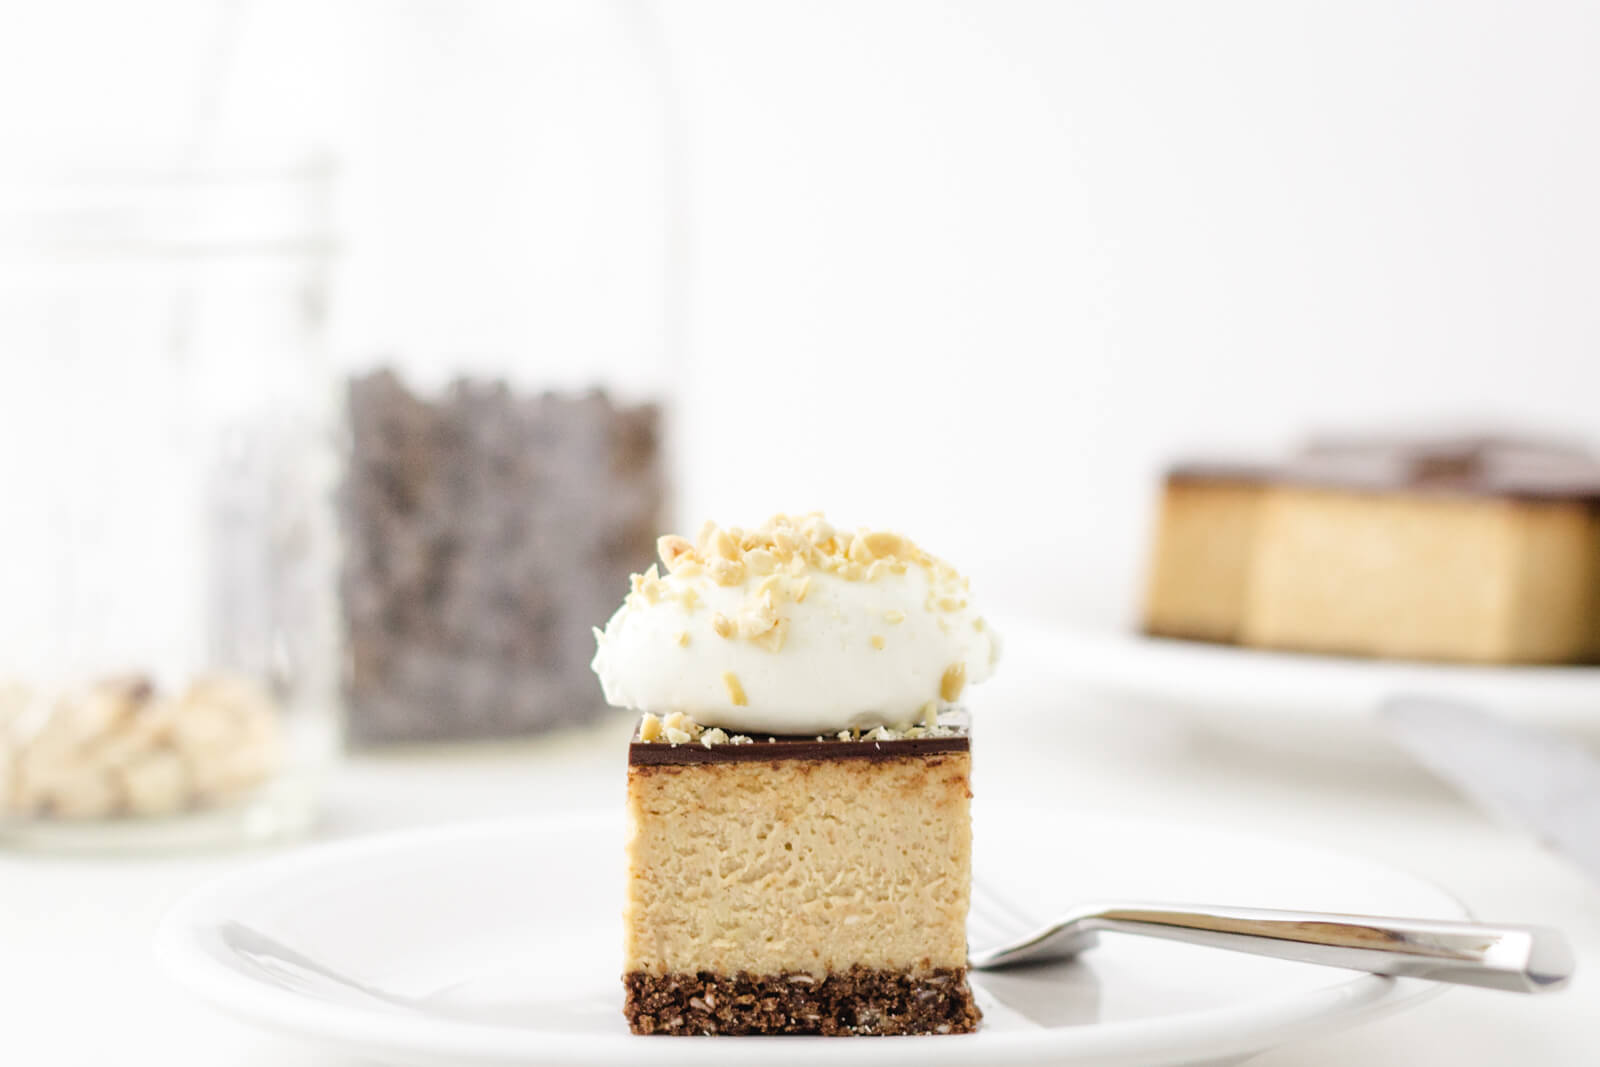 Keto Peanut Butter Cheesecake With Chocolate Crust and Chocolate Ganache Topping